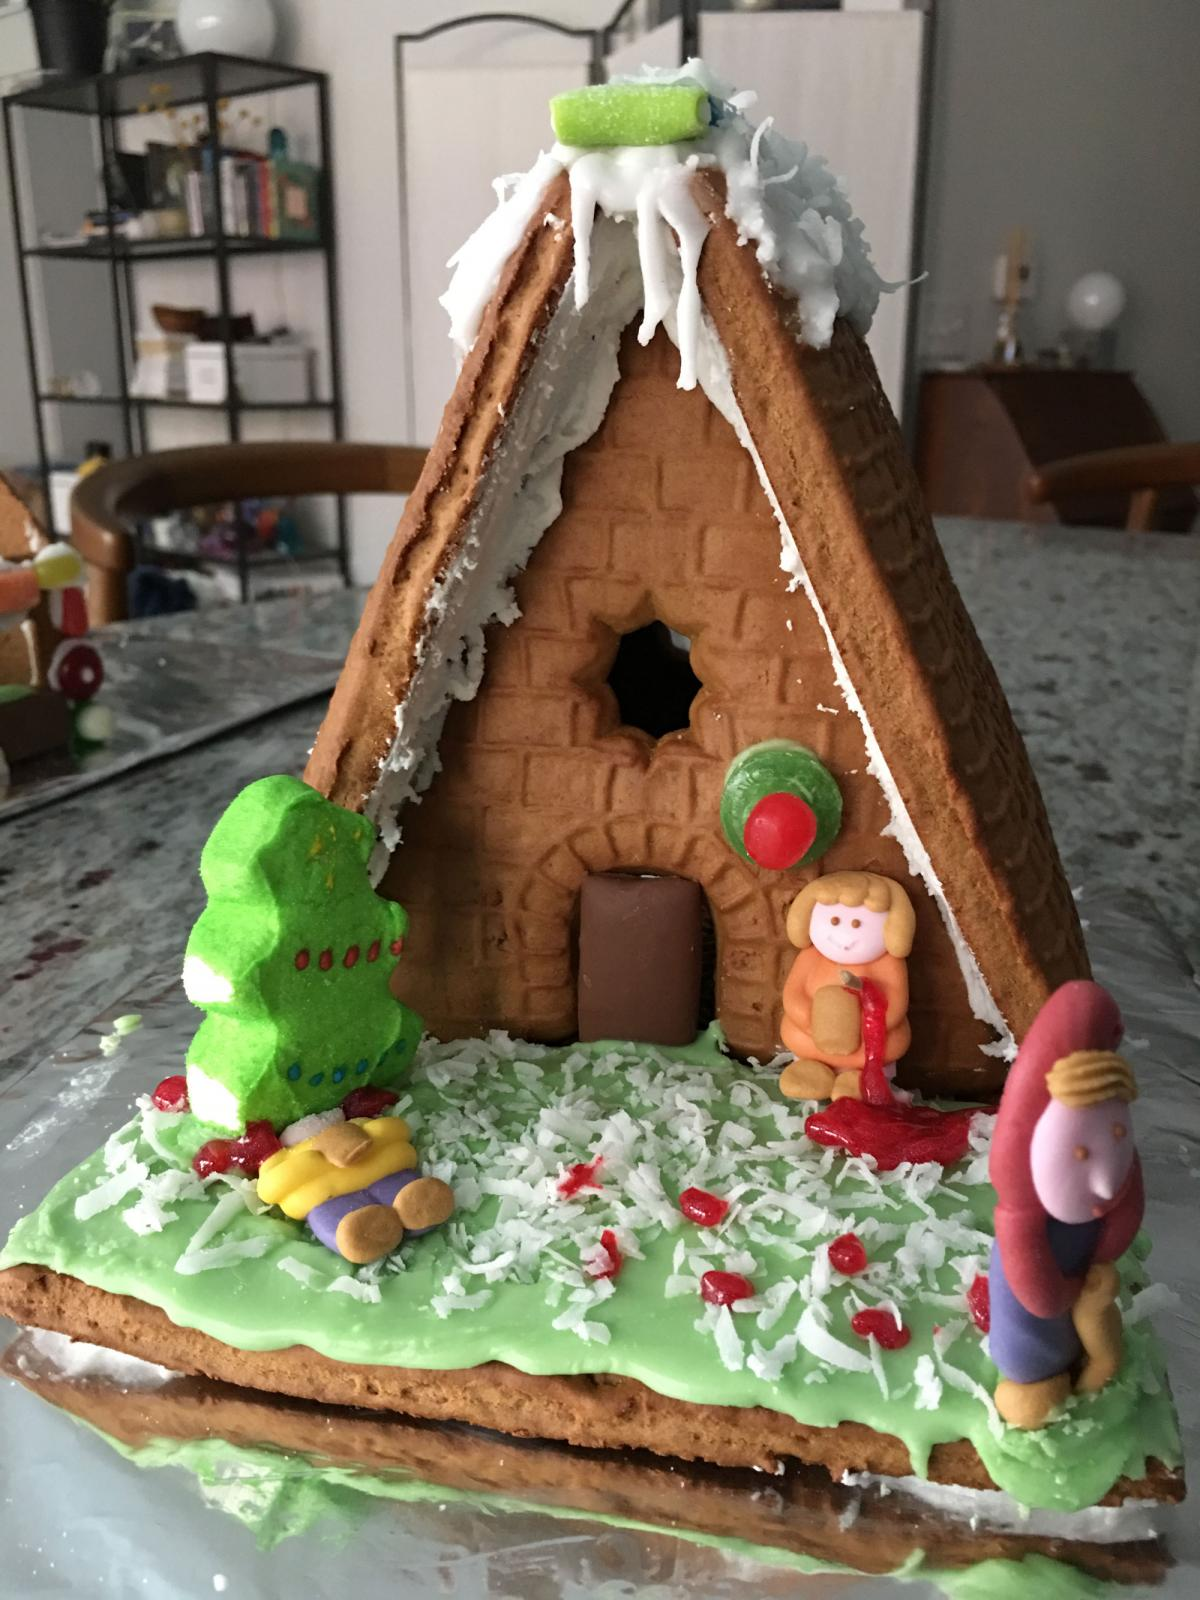 Gingerbread house decorated with candy.